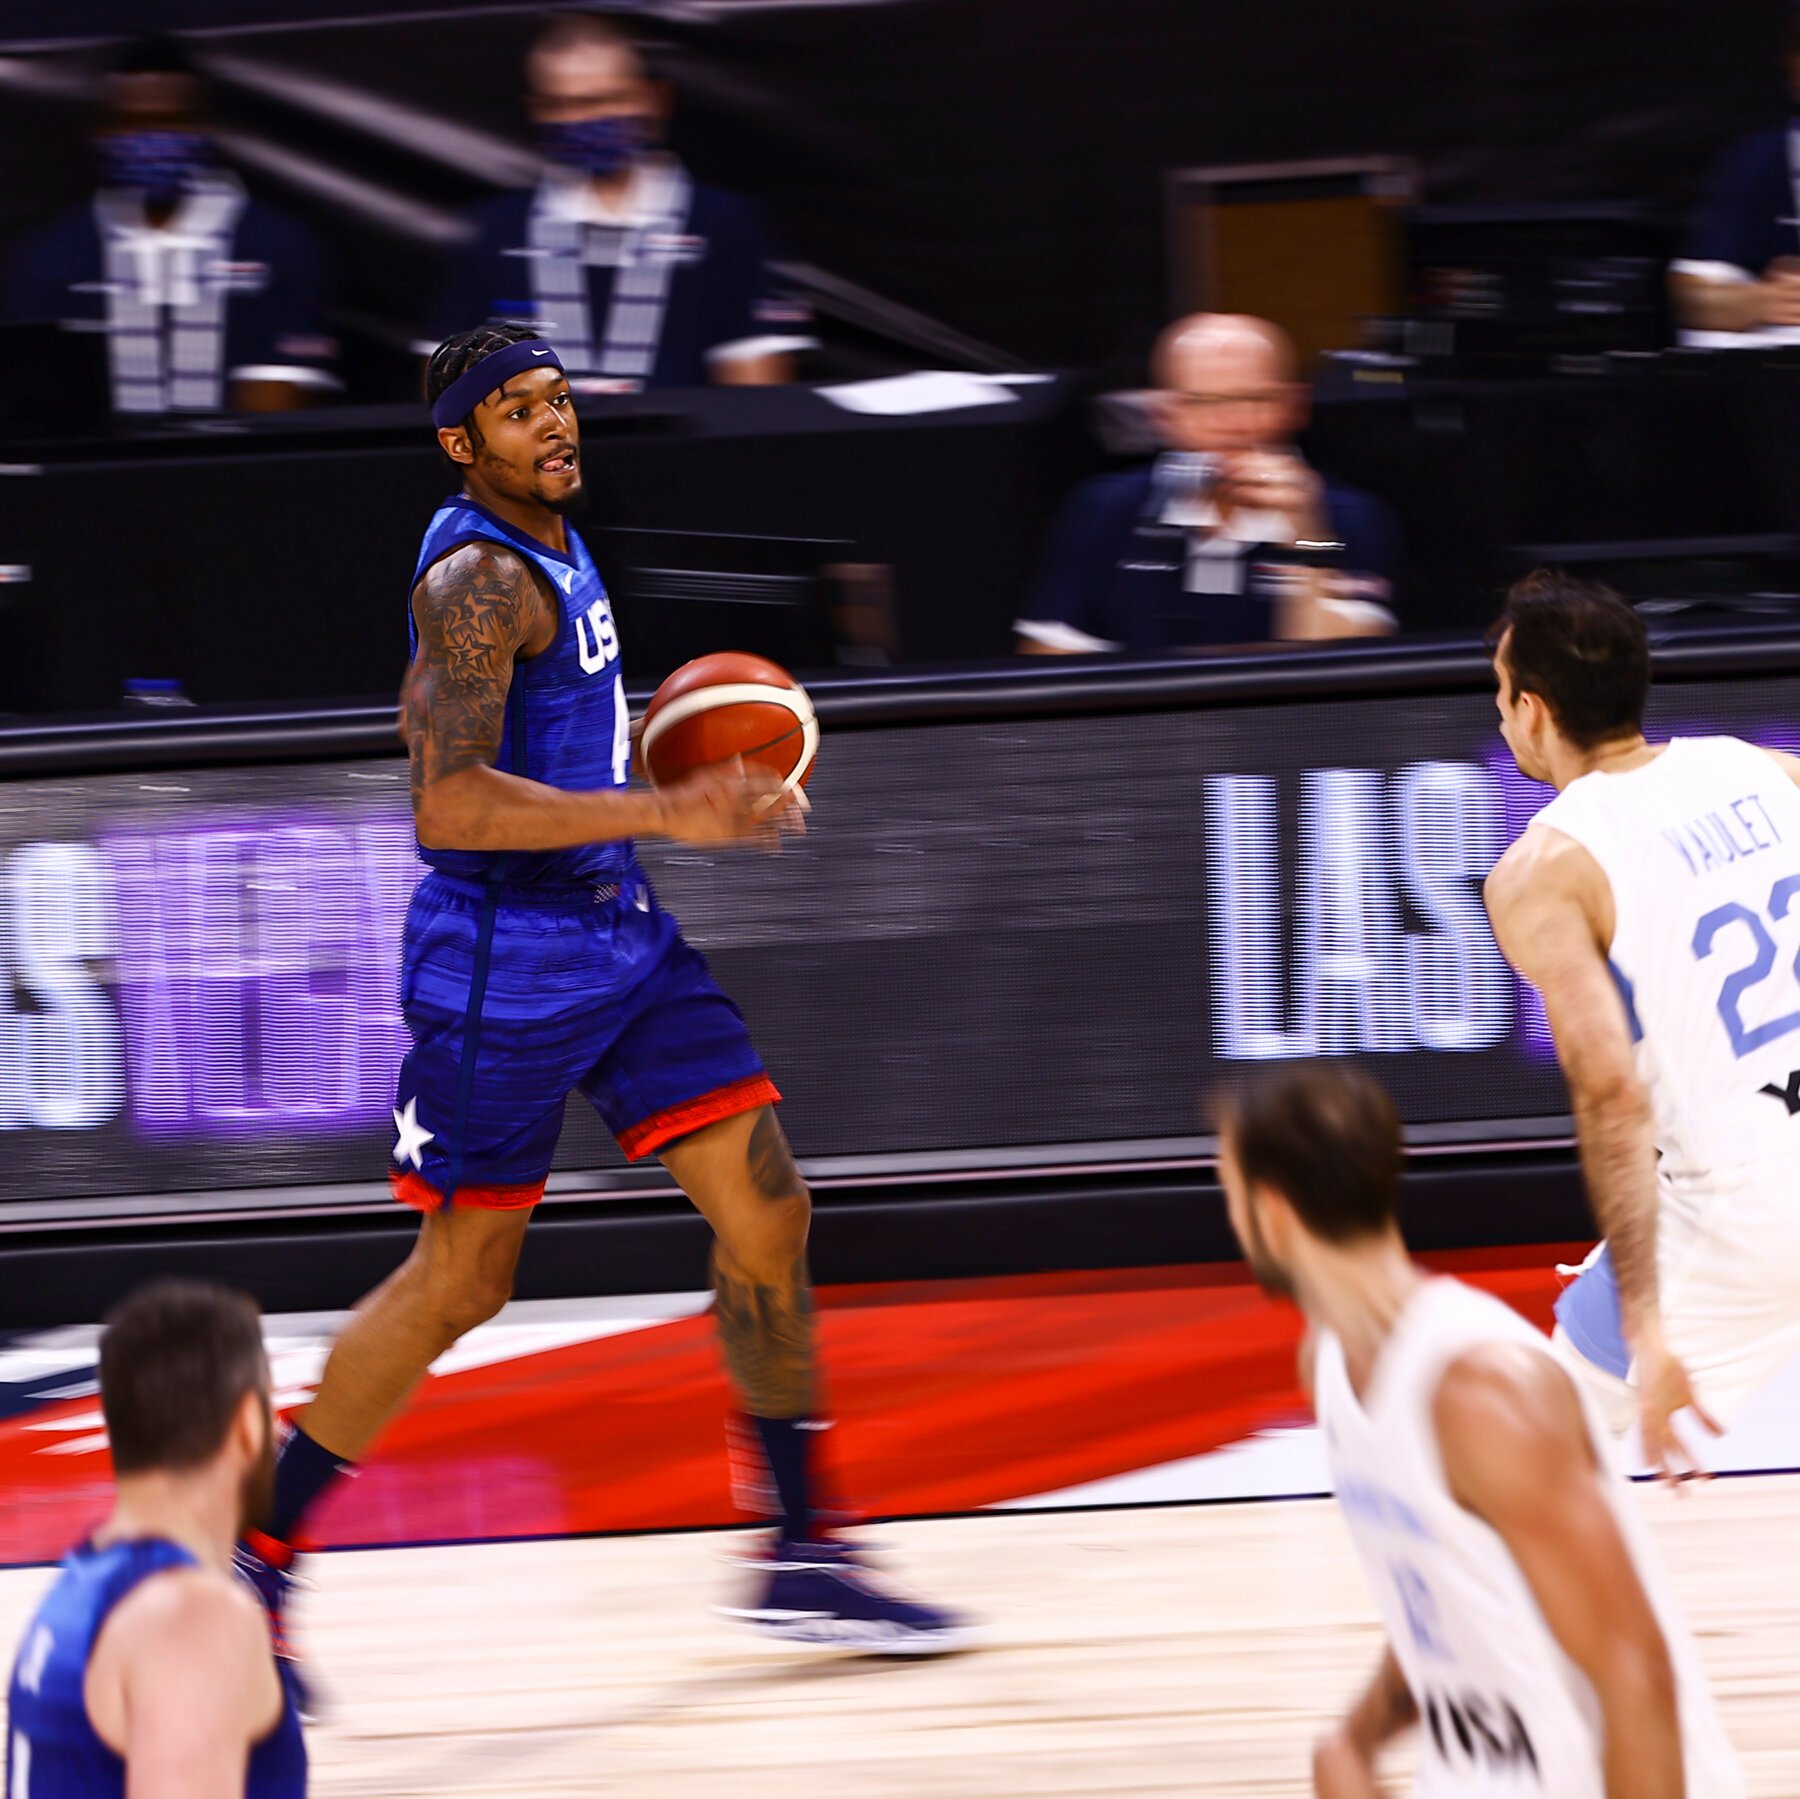 Basketball team usa faces australia in the semifinals after the aussies dispatched argentina with ease. Team U S A Basketball Falls To Australia Its 2nd Straight Loss The New York Times